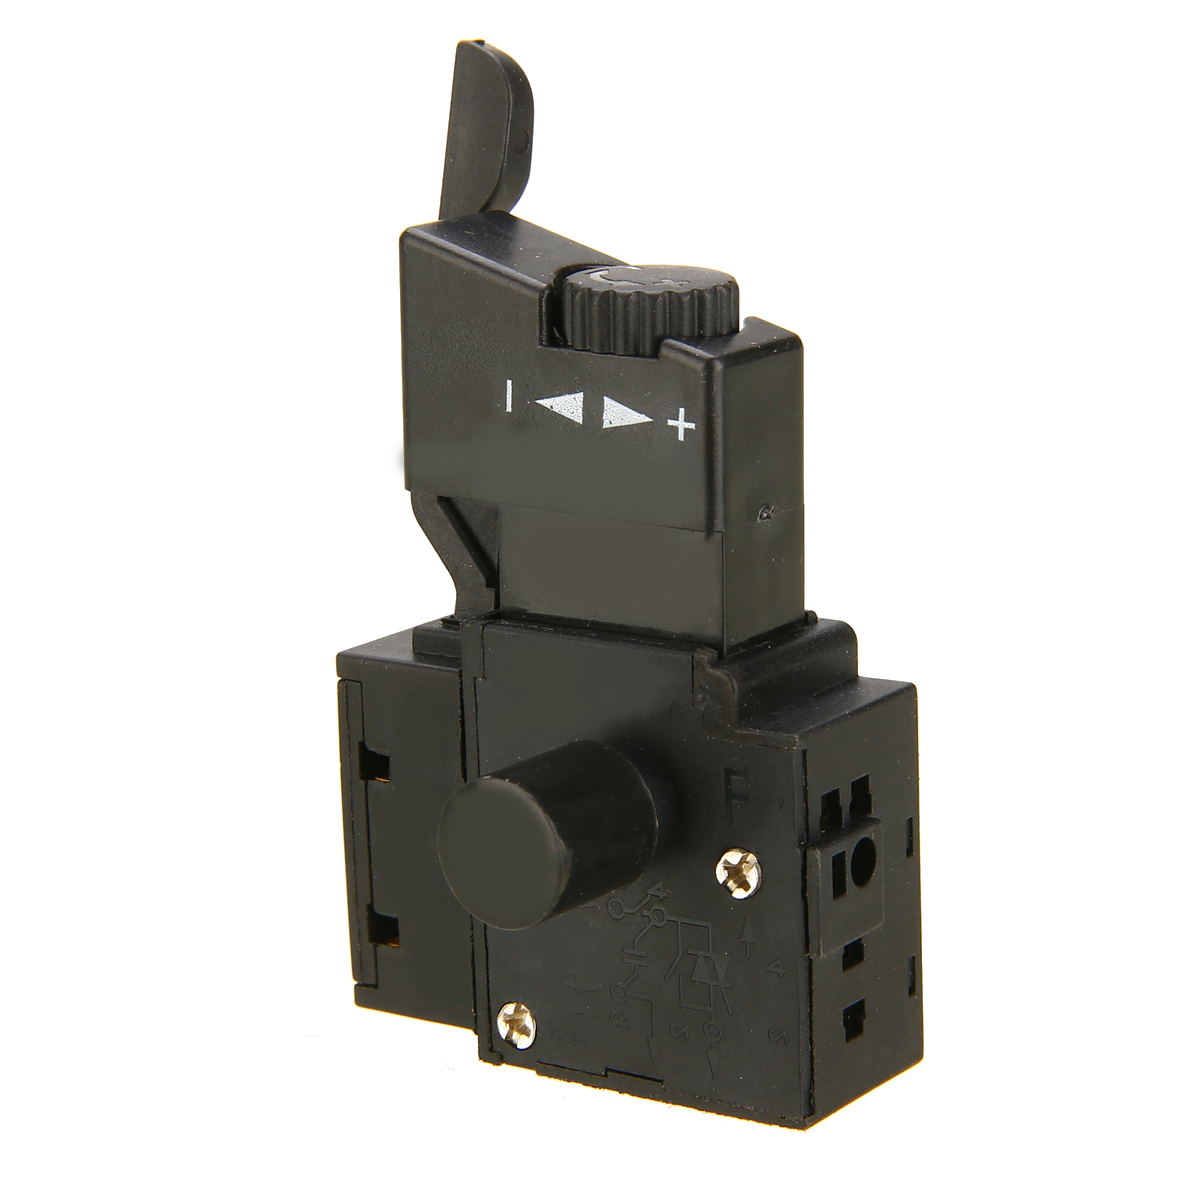 6A Adjustable Speed Switch <font><b>FA2</b></font>-<font><b>6</b></font>/<font><b>1BEK</b></font> Lock on Power Electric Drill Speed Control Trigger Button Switch Plastic Casing image